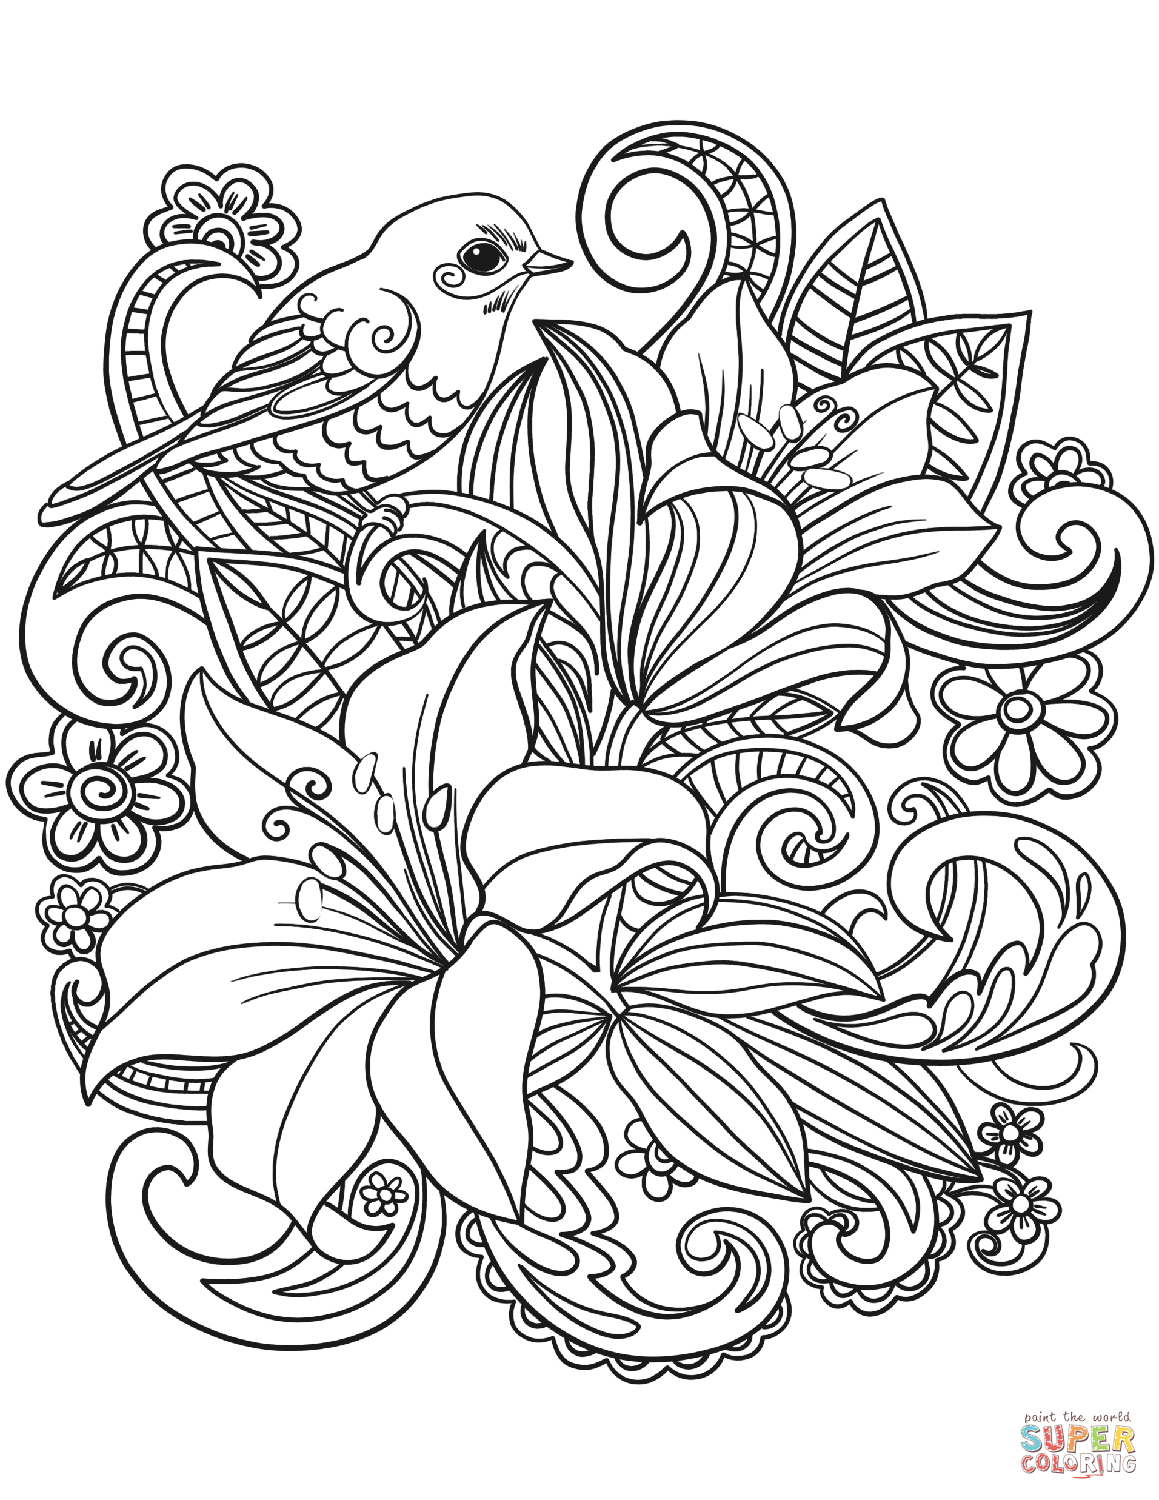 Floral Coloring Pages Skylark And Flowers Page Free Printable